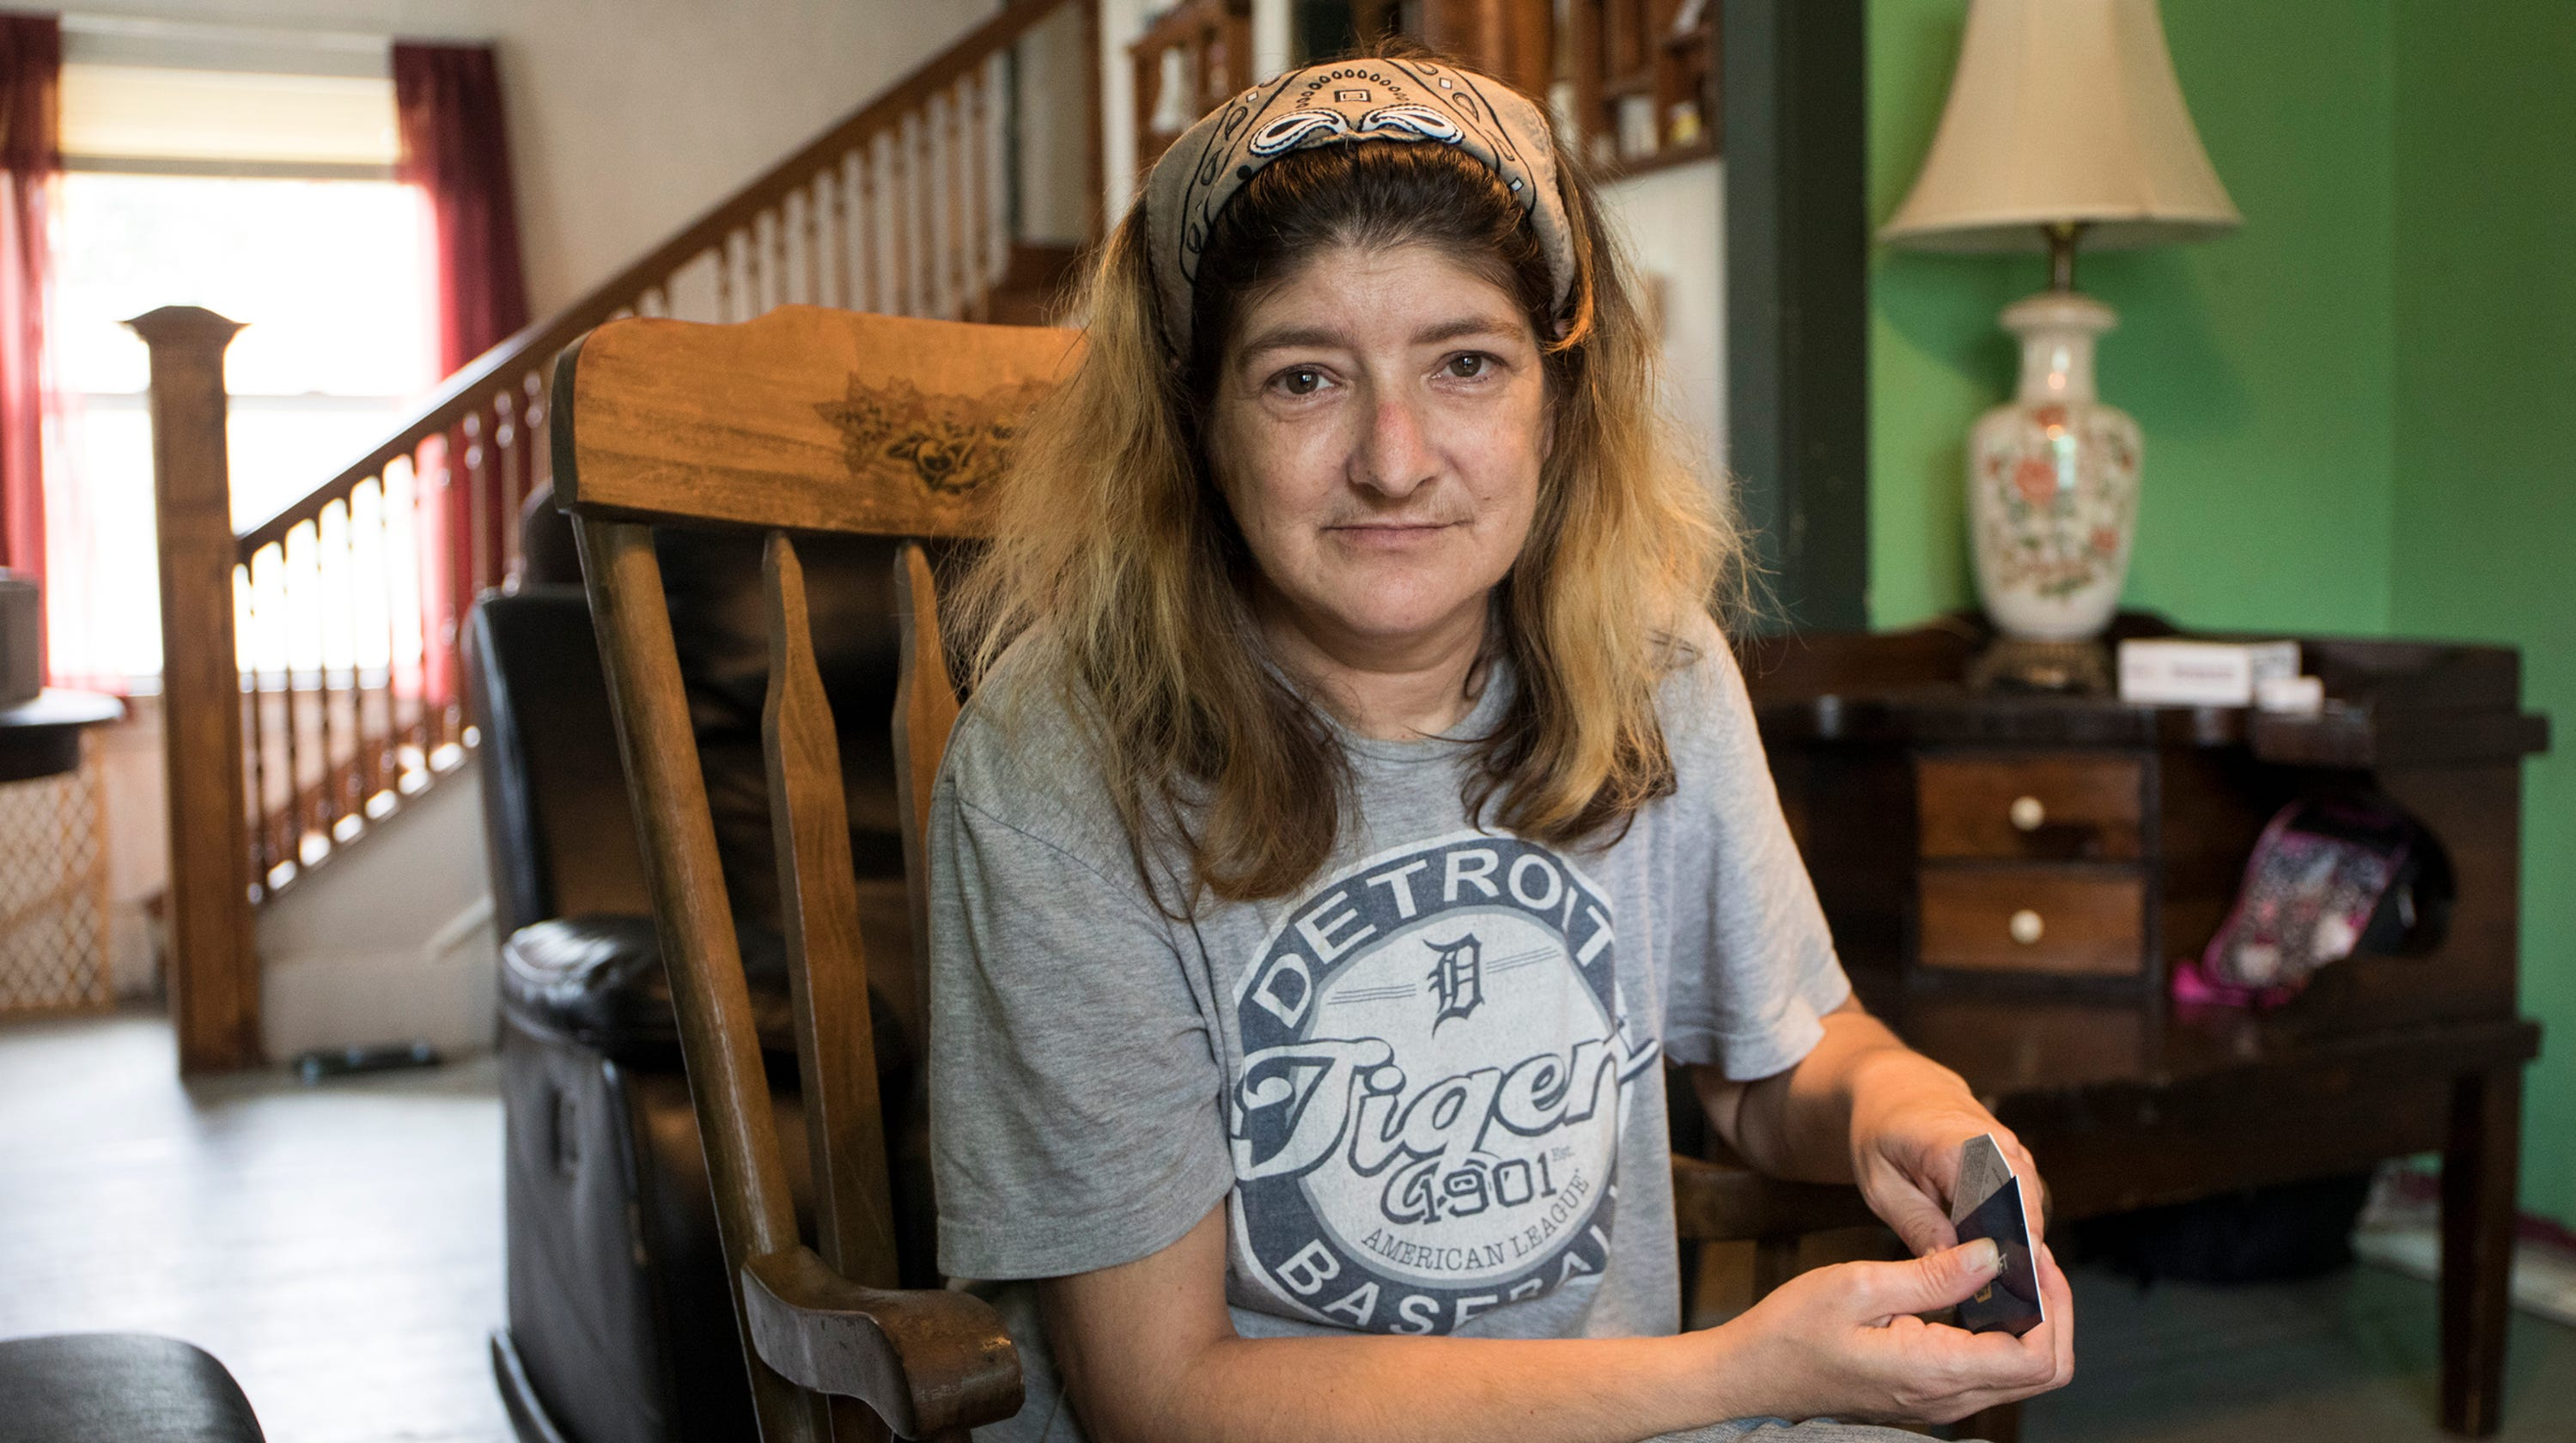 Here's how one consumer desperate for a loan got slammed by a fake check scam